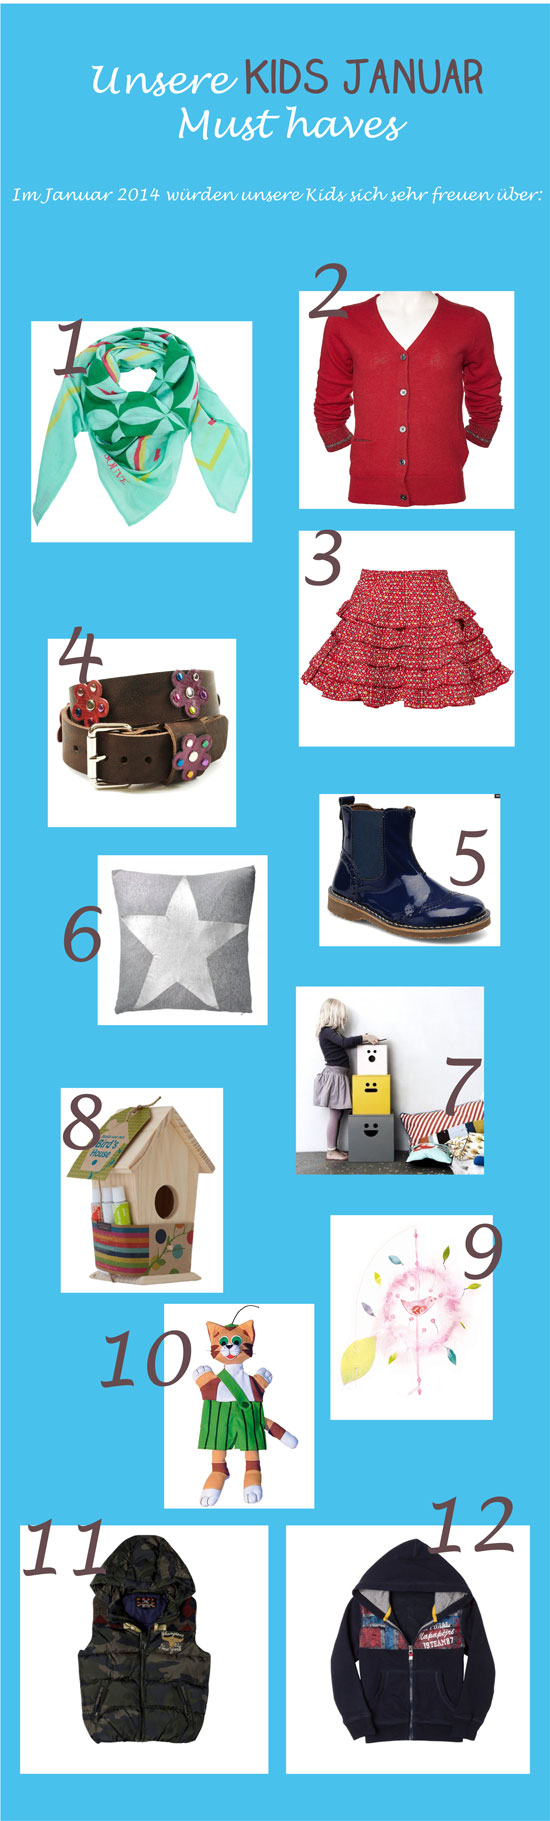 Januar-2014-Kids-Must-haves